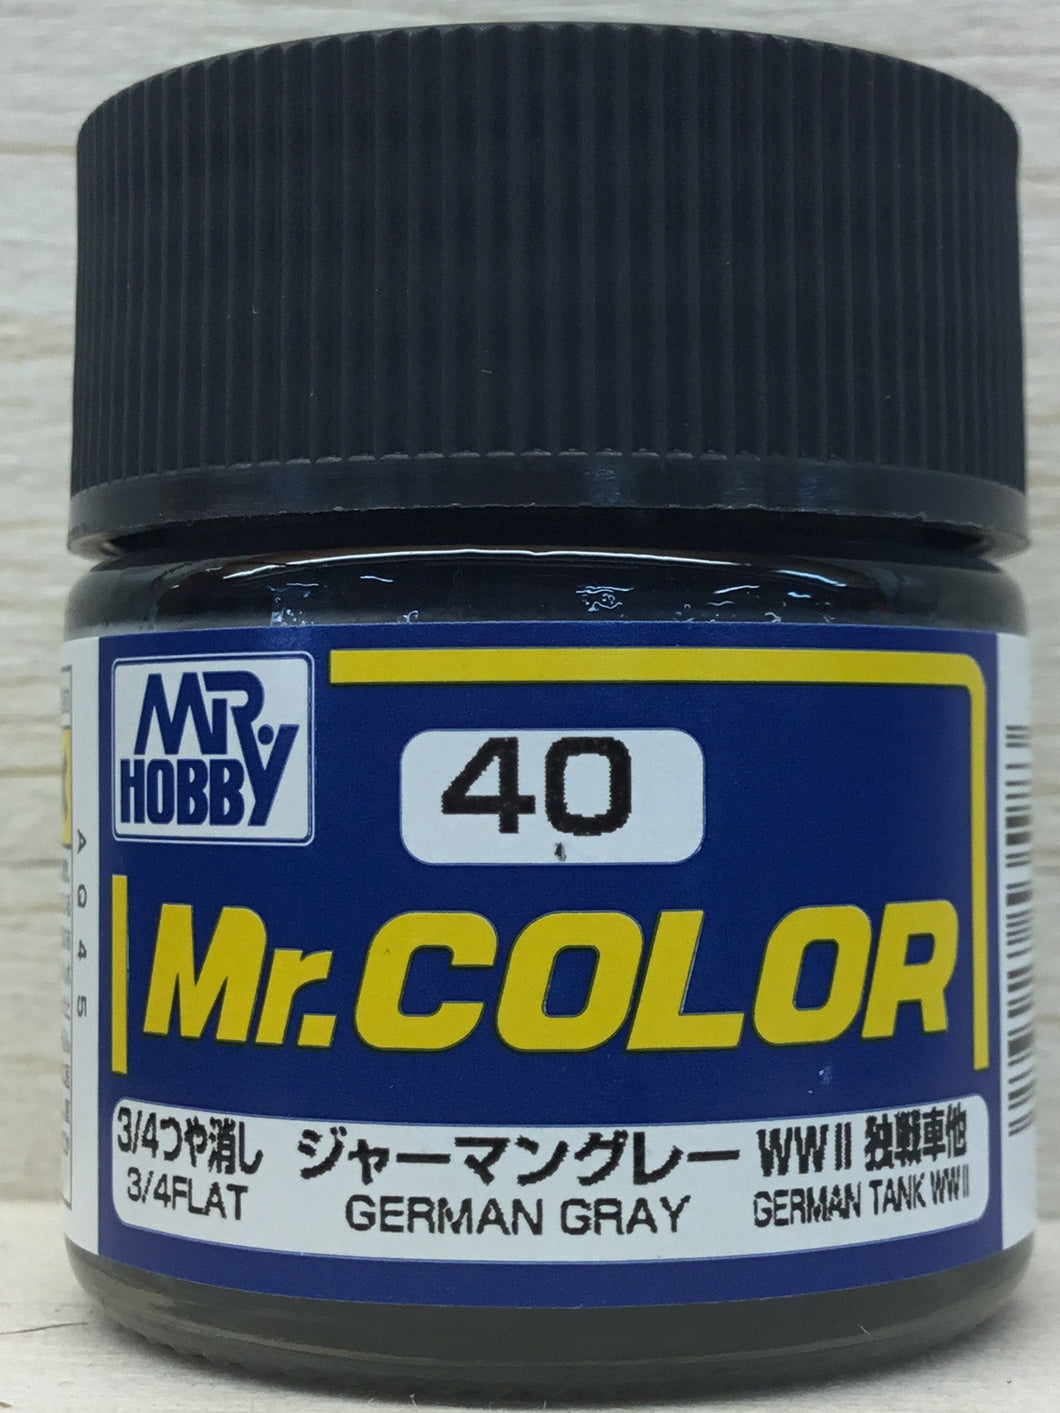 GUNZE MR COLOR C40 3/4FLAT GERMAN GRAY